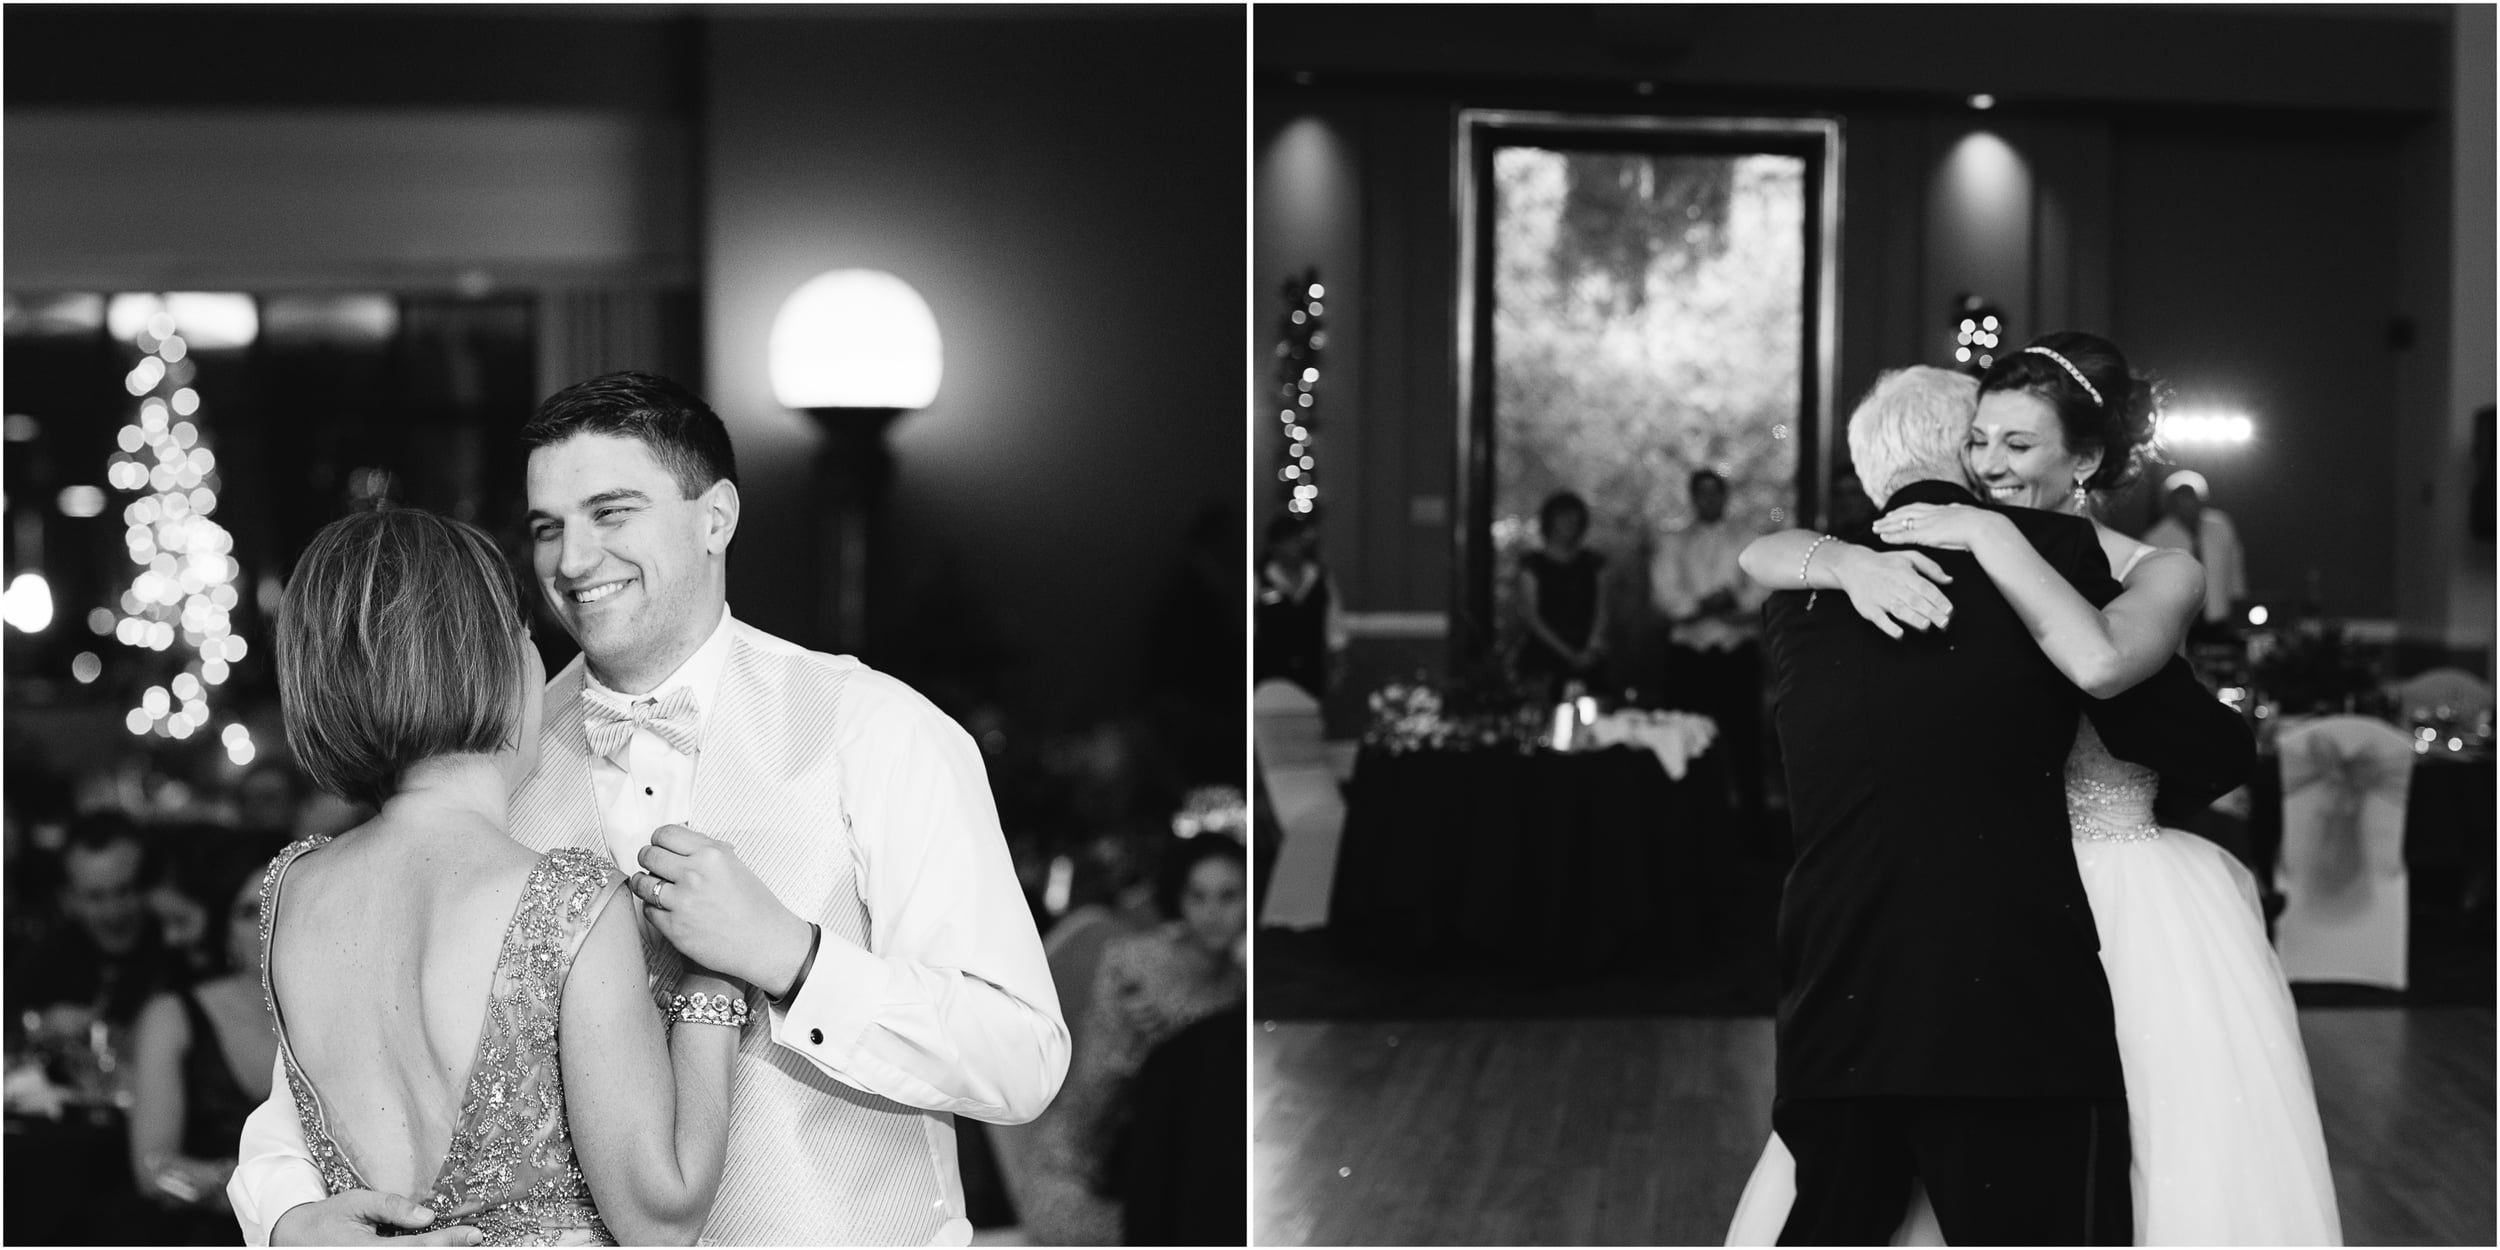 Chestnut Ridge Country Club New Years Eve parent dances, Mariah Fisher.jpg